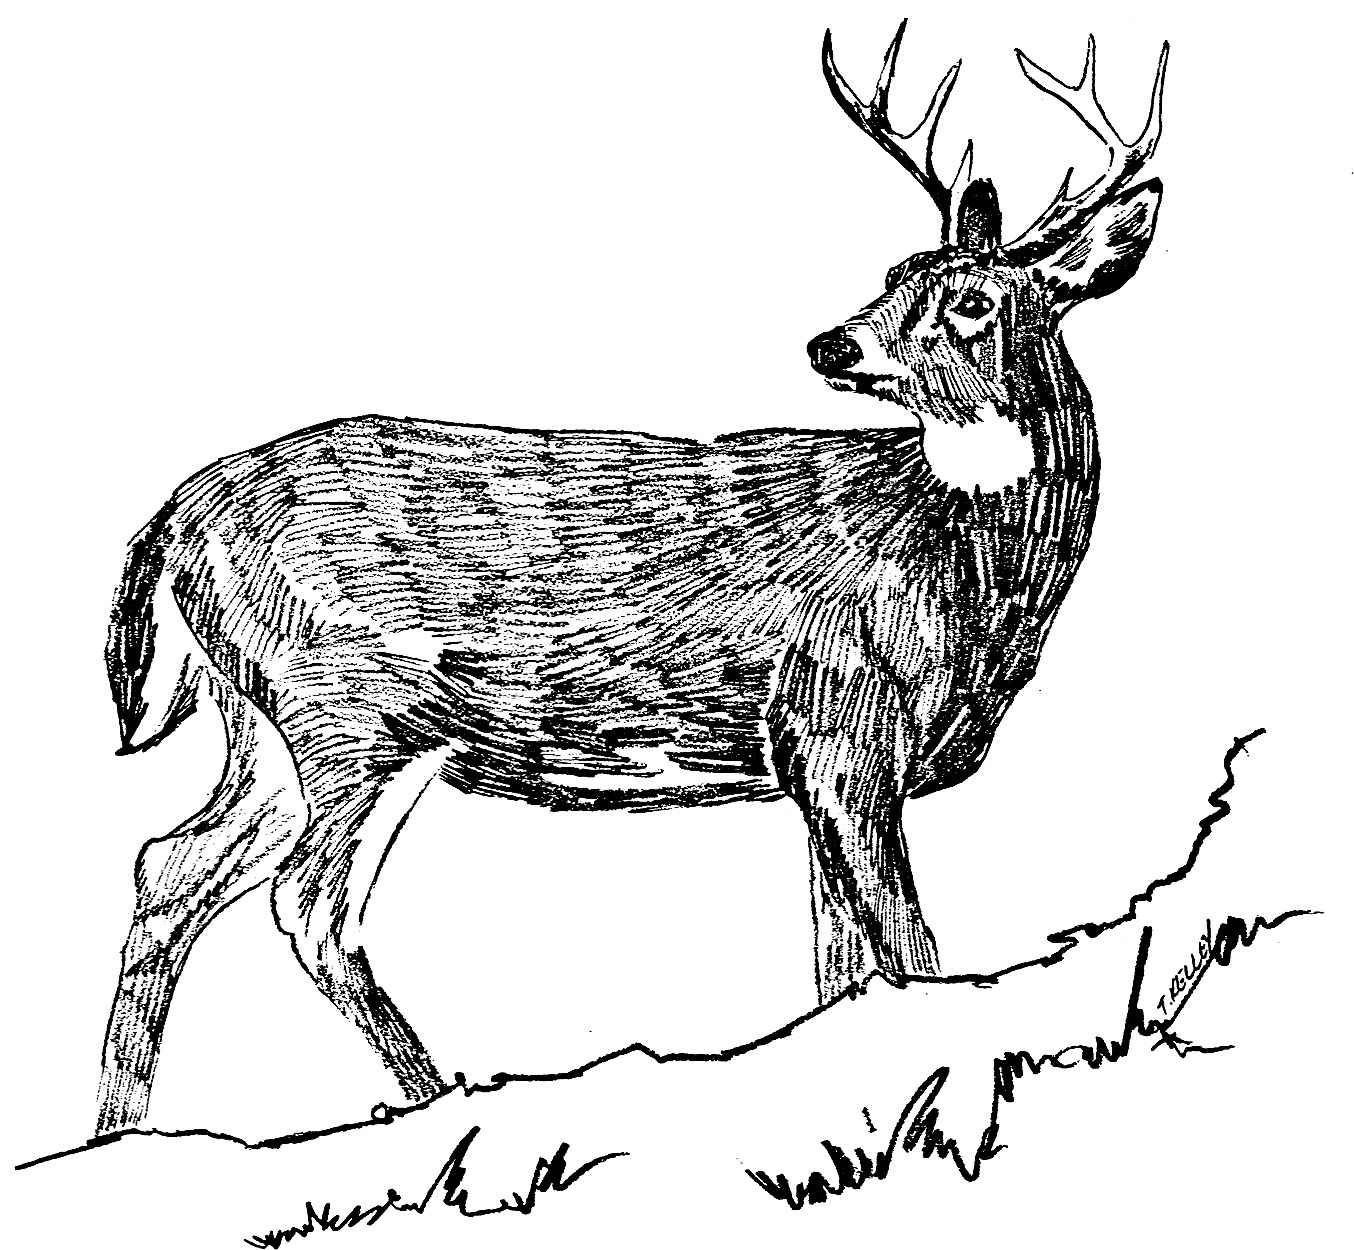 Deer illustration black and white - photo#9